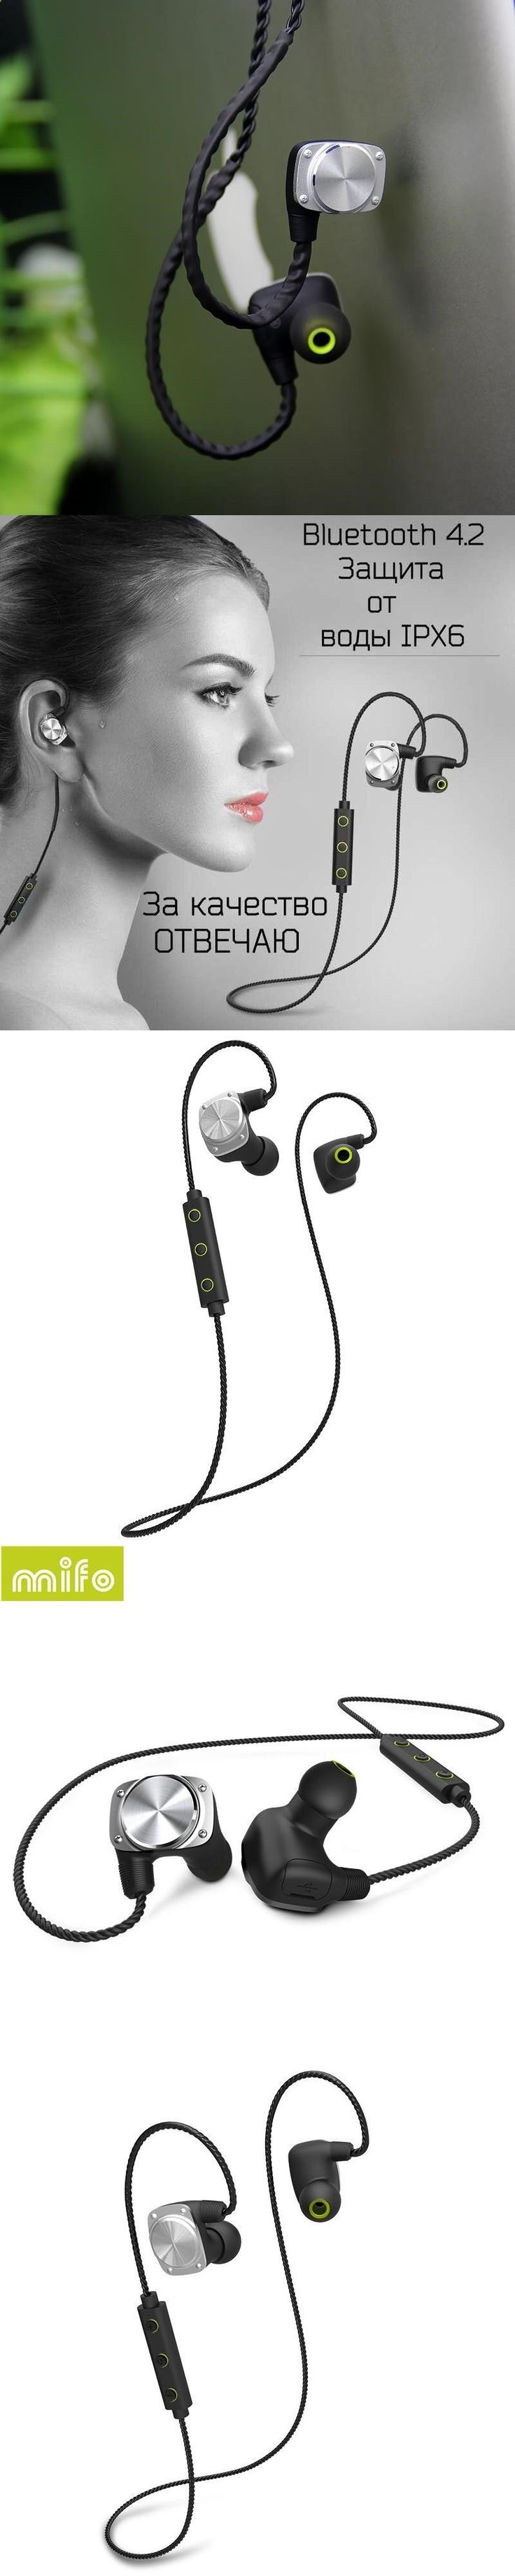 Sports Headphones - Sports Headphones - Mifo U6 Wireless Bluetooth Headset Waterproof Sport Headphone Noise Cancelling Earphone and Headphones with mic Running Earbuds - If you usually go out to run, walk or any other sport in which you usually carry music to accompany or motivate you, we have selected 13 models of sports headphones that we consider among the best in the market for different aspects, from comfort to use to design, sound quality or value for money, so that you find vari...